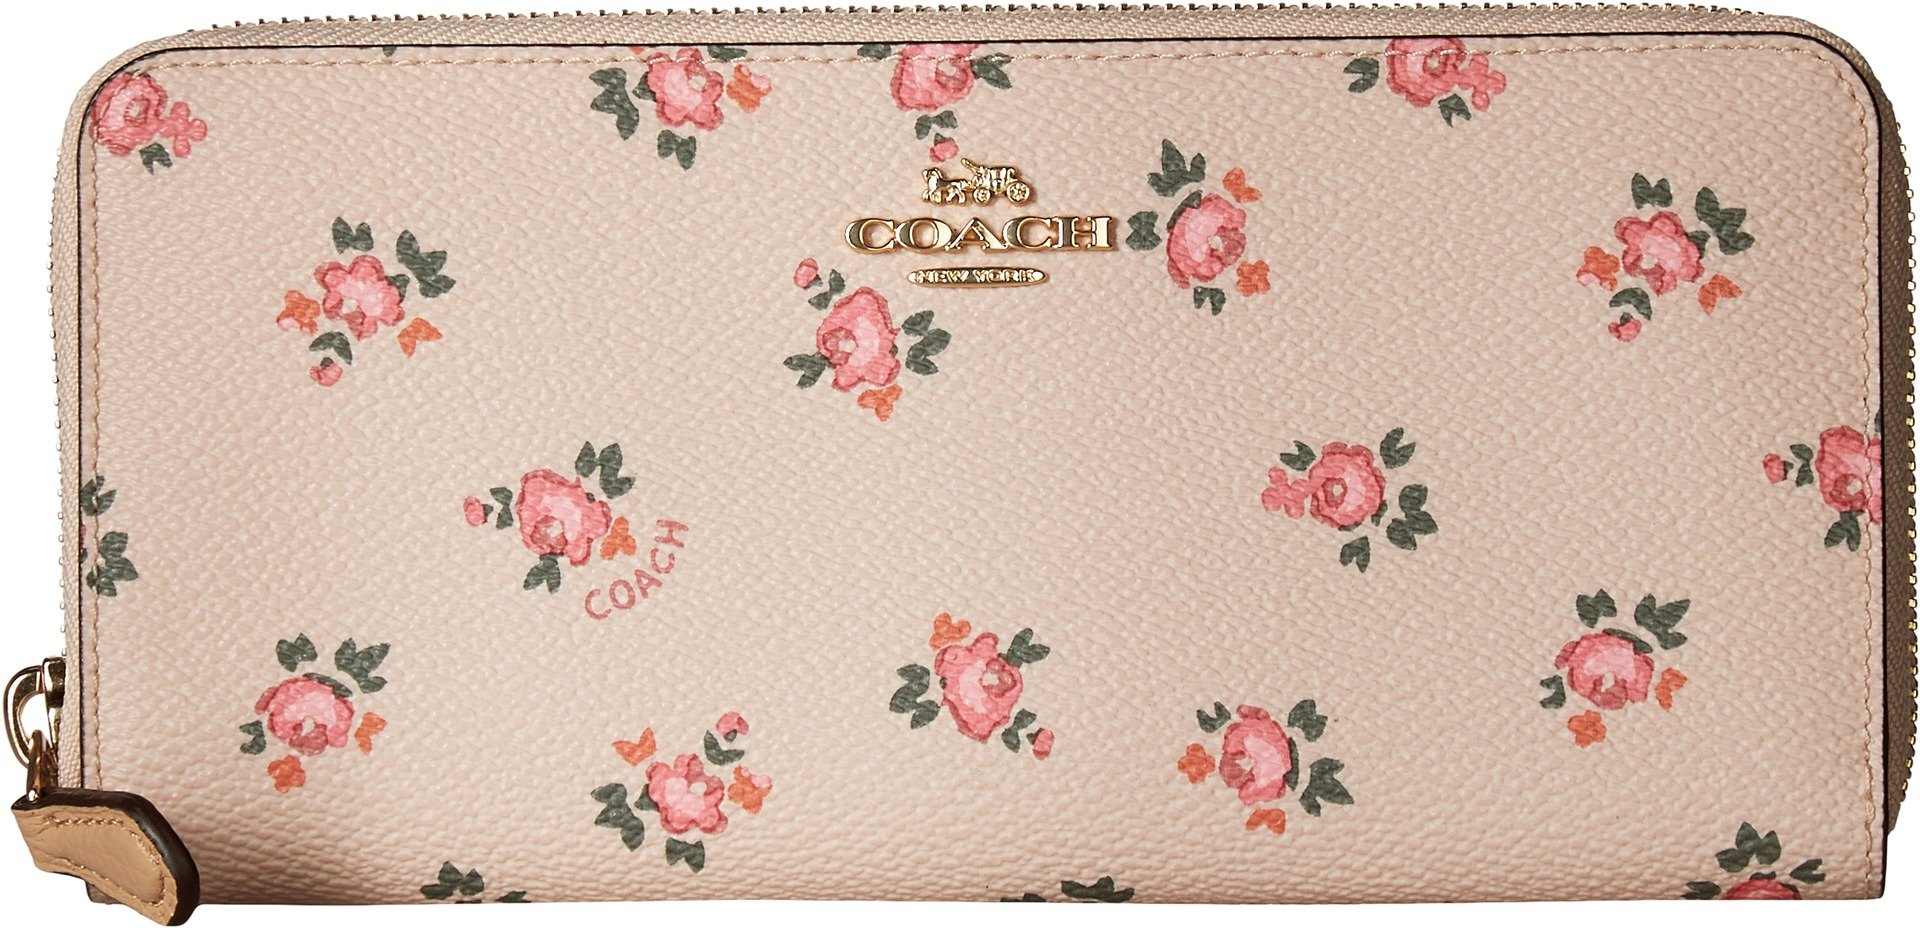 COACH Women's Accordion Zip Wallet With Floral Bloom Print Li/Beechwood Floral Bloom One Size by Coach